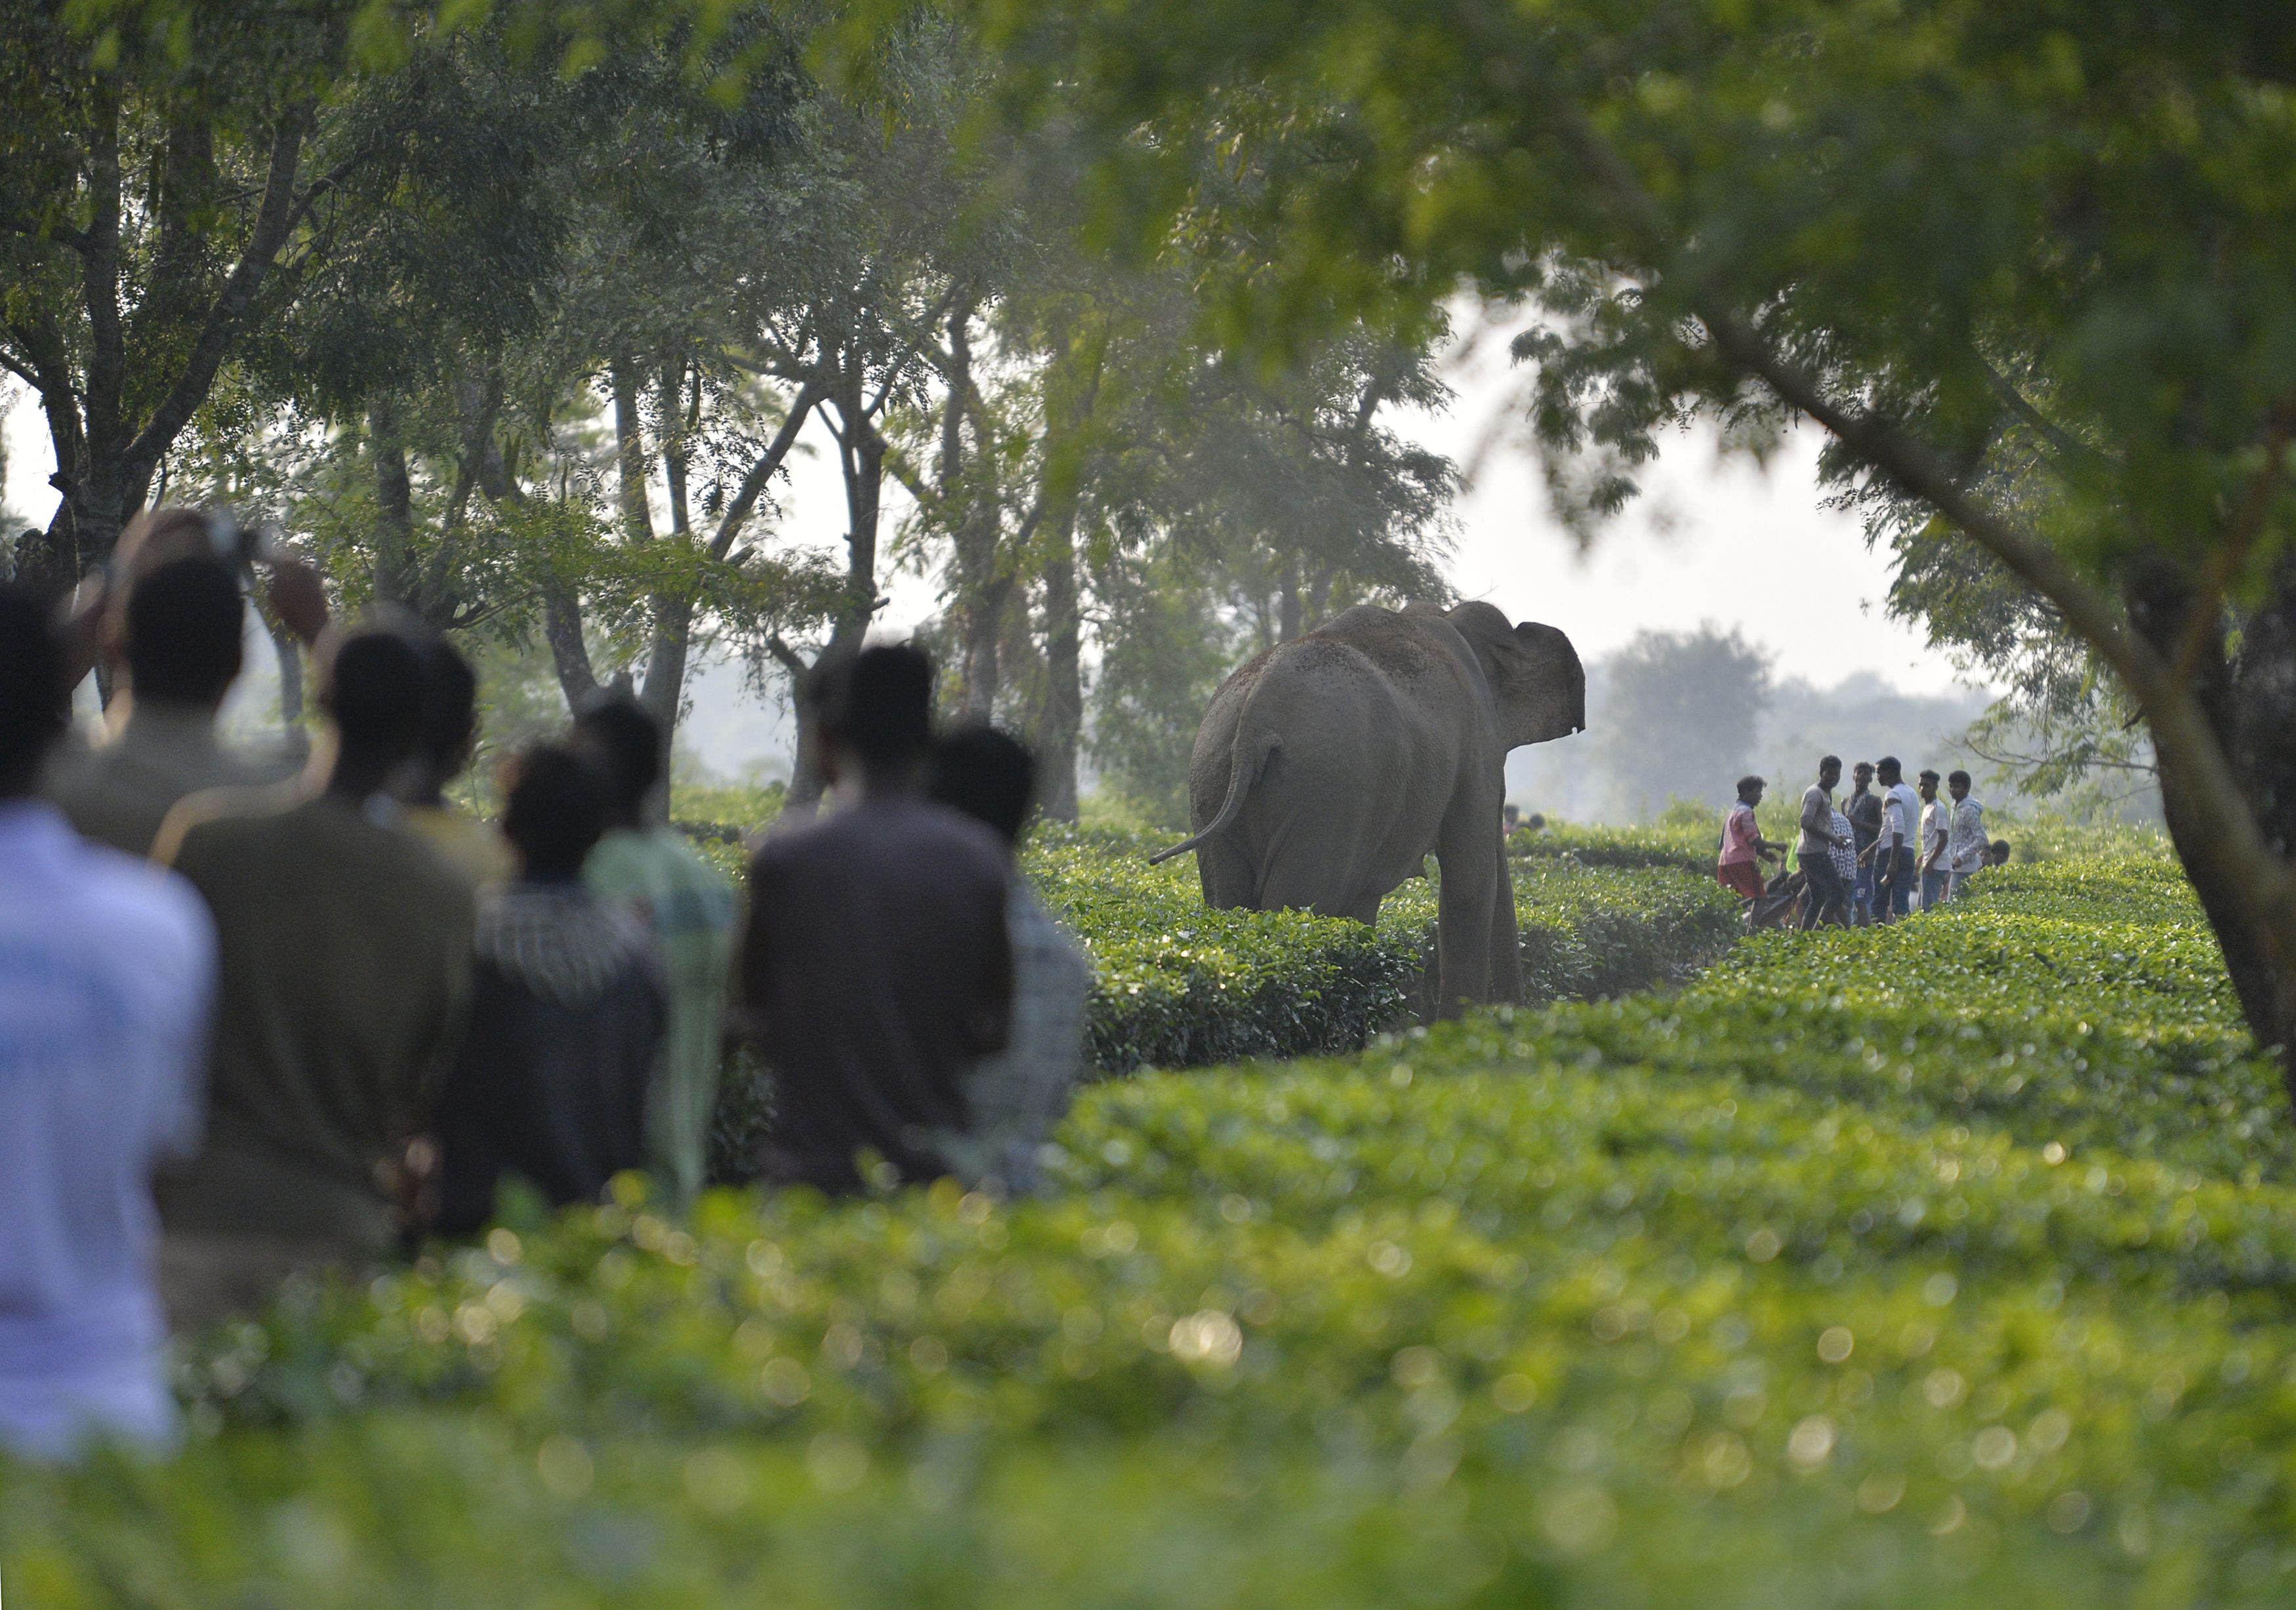 Elephant Kills Man After People Pelt Stones At Its Just Born Baby